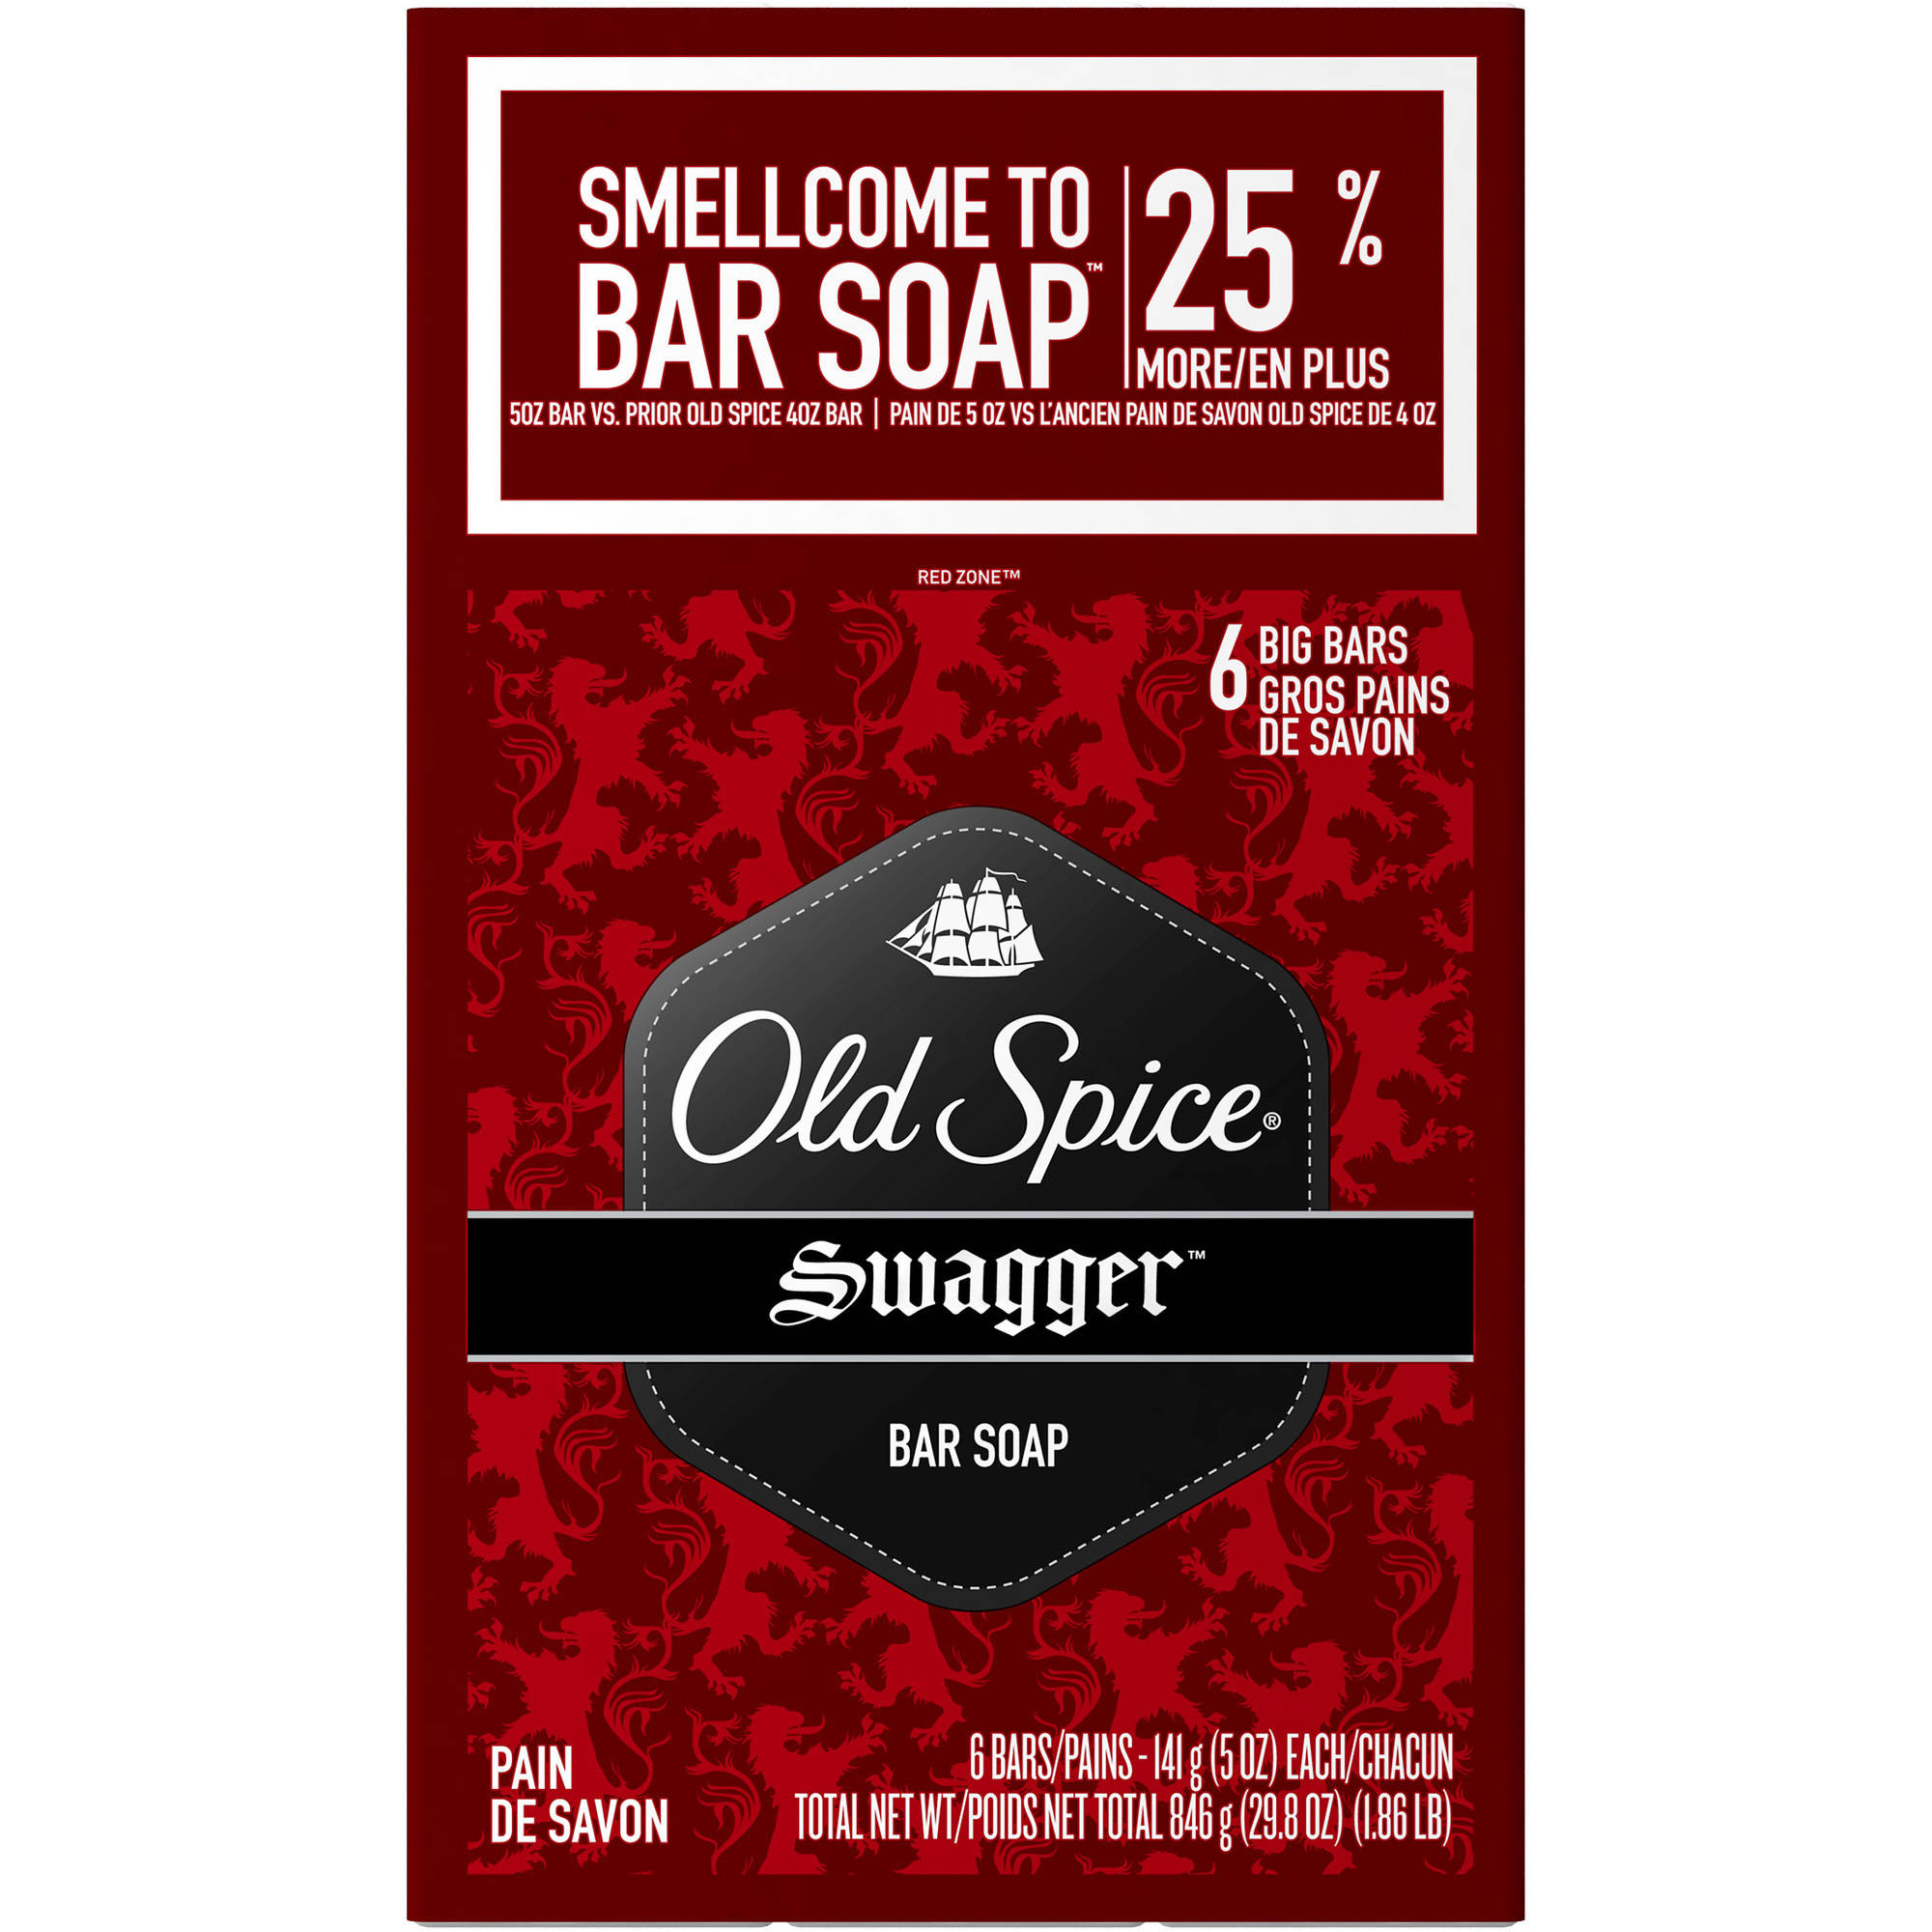 Old Spice Swagger Bar Soap, 4 oz, 6 count